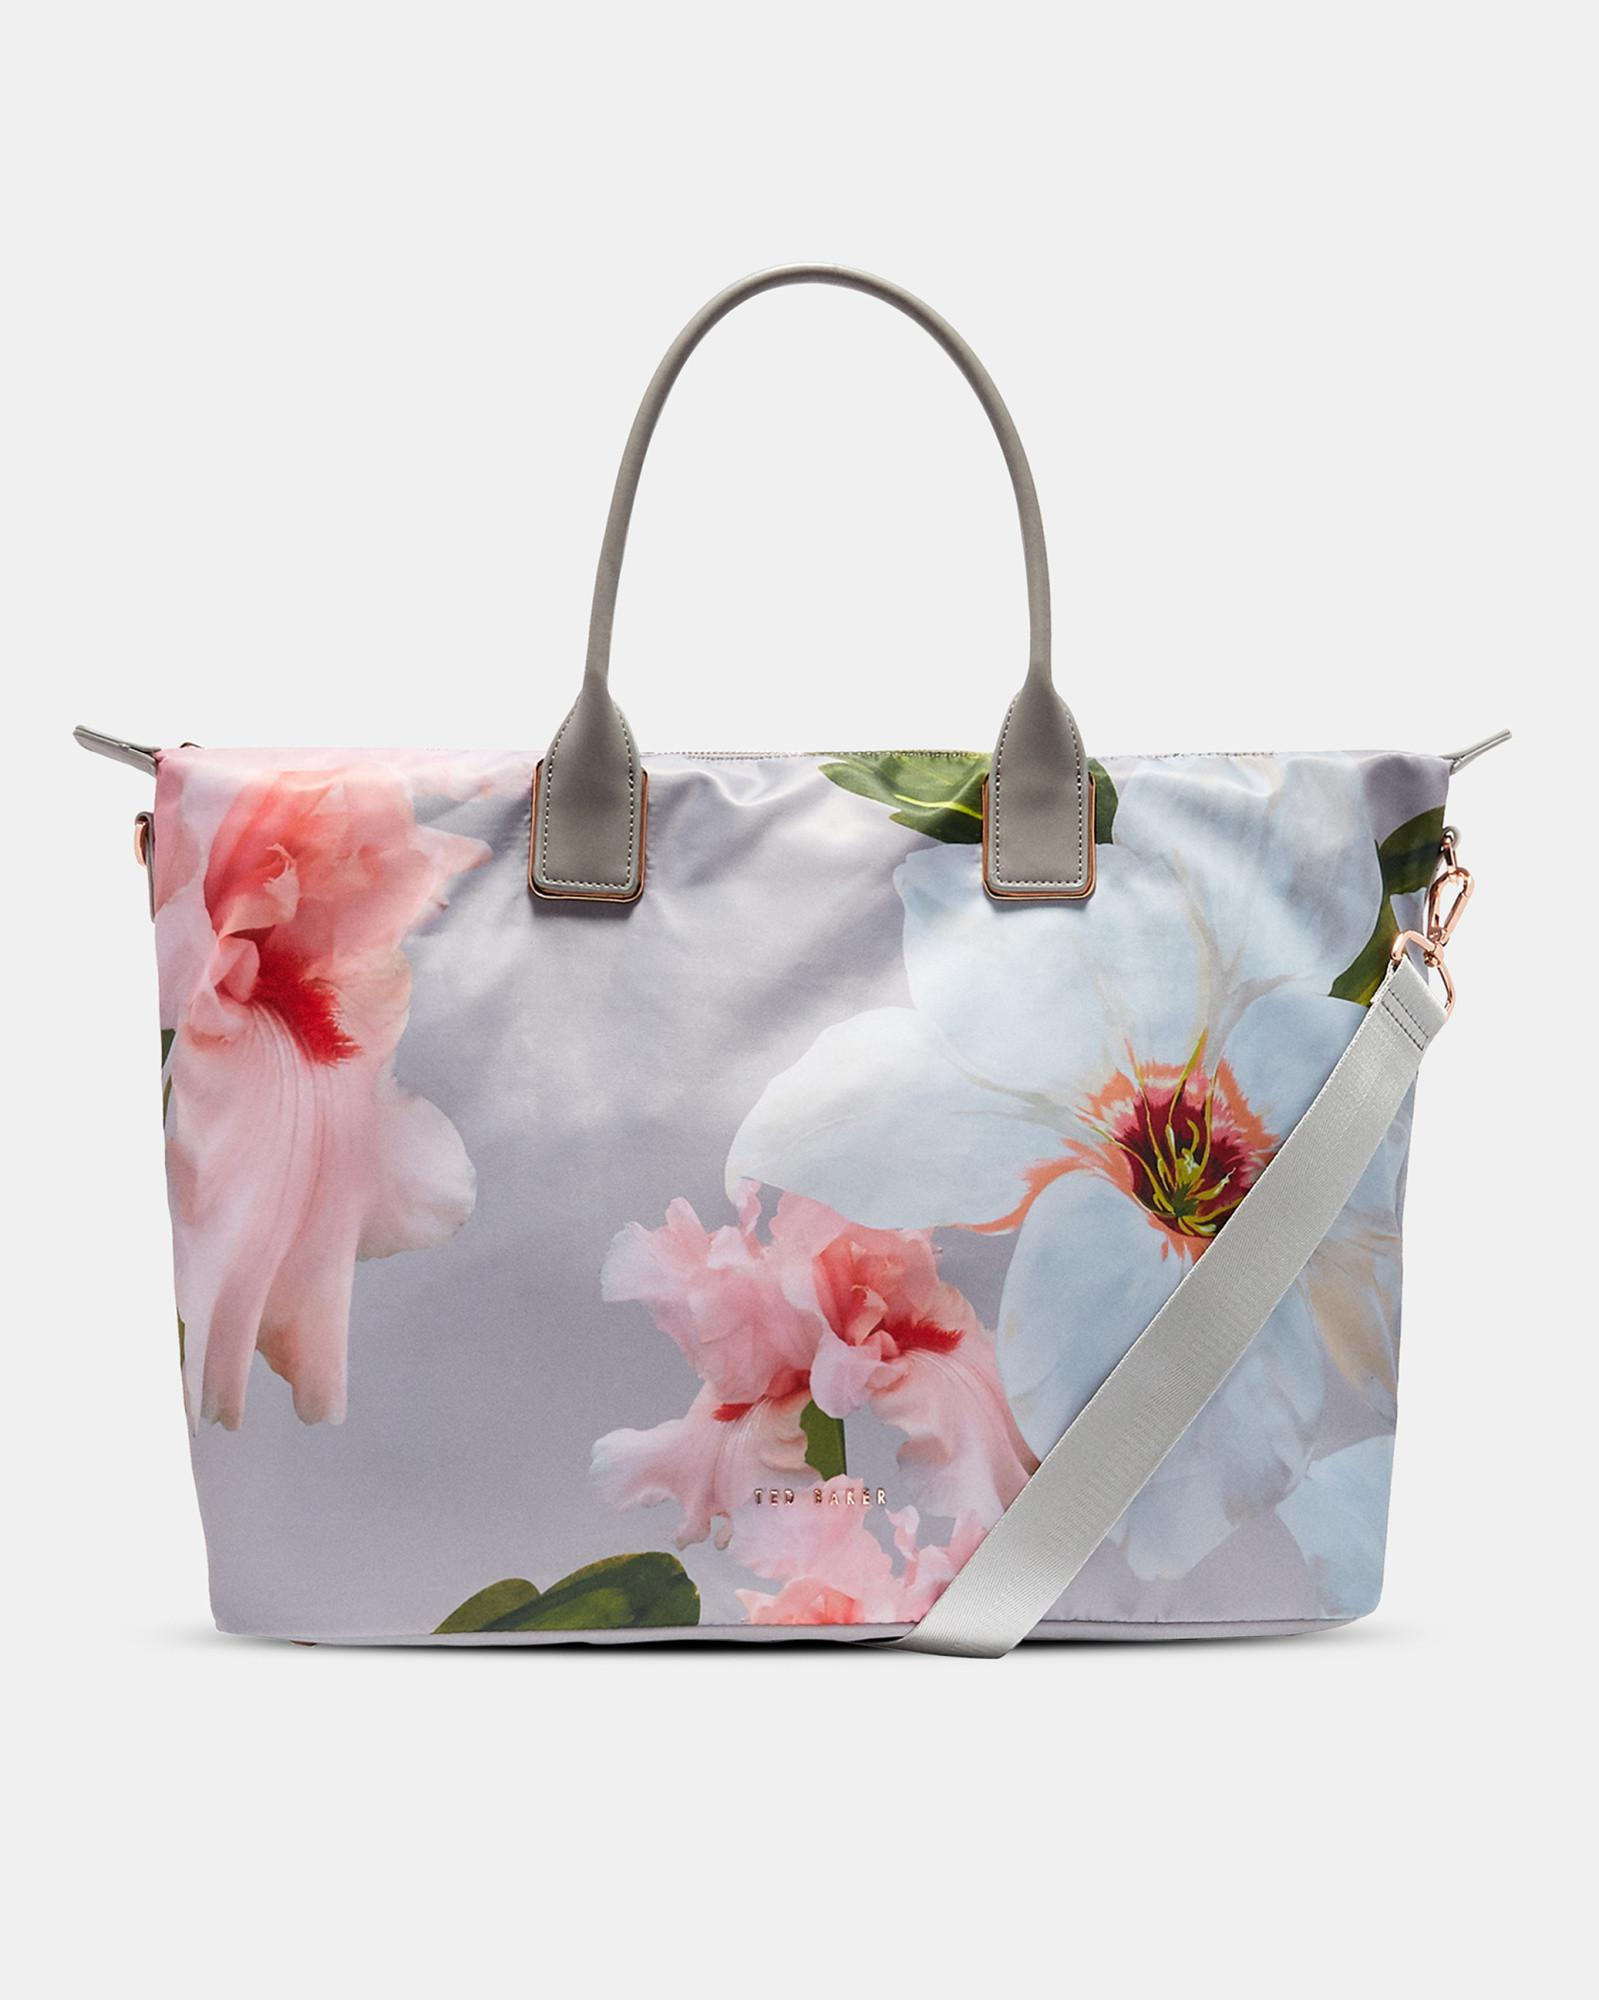 bd55b1cf4a14 Ted Baker Chatsworth Bloom Large Nylon Tote Bag in Gray - Lyst